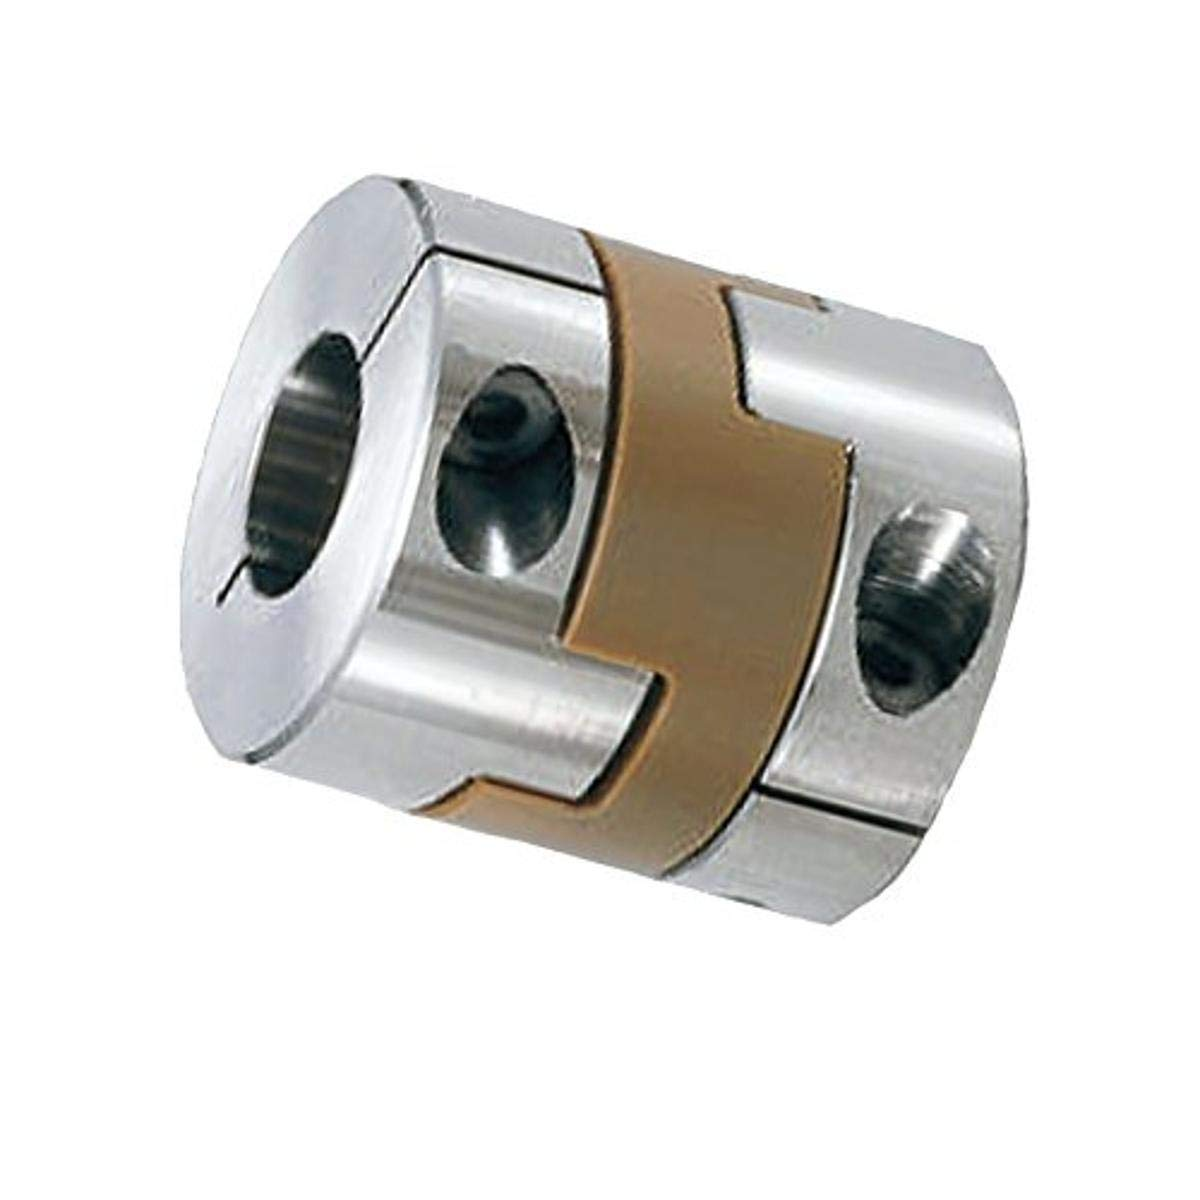 NBK MOP-32C-12-14 Oldham Cleanroom/Vacuum/Heat Resistant Coupling, PEEK, Clamping Type, Bore Diameters 12 and 14 mm, Aluminum A2017